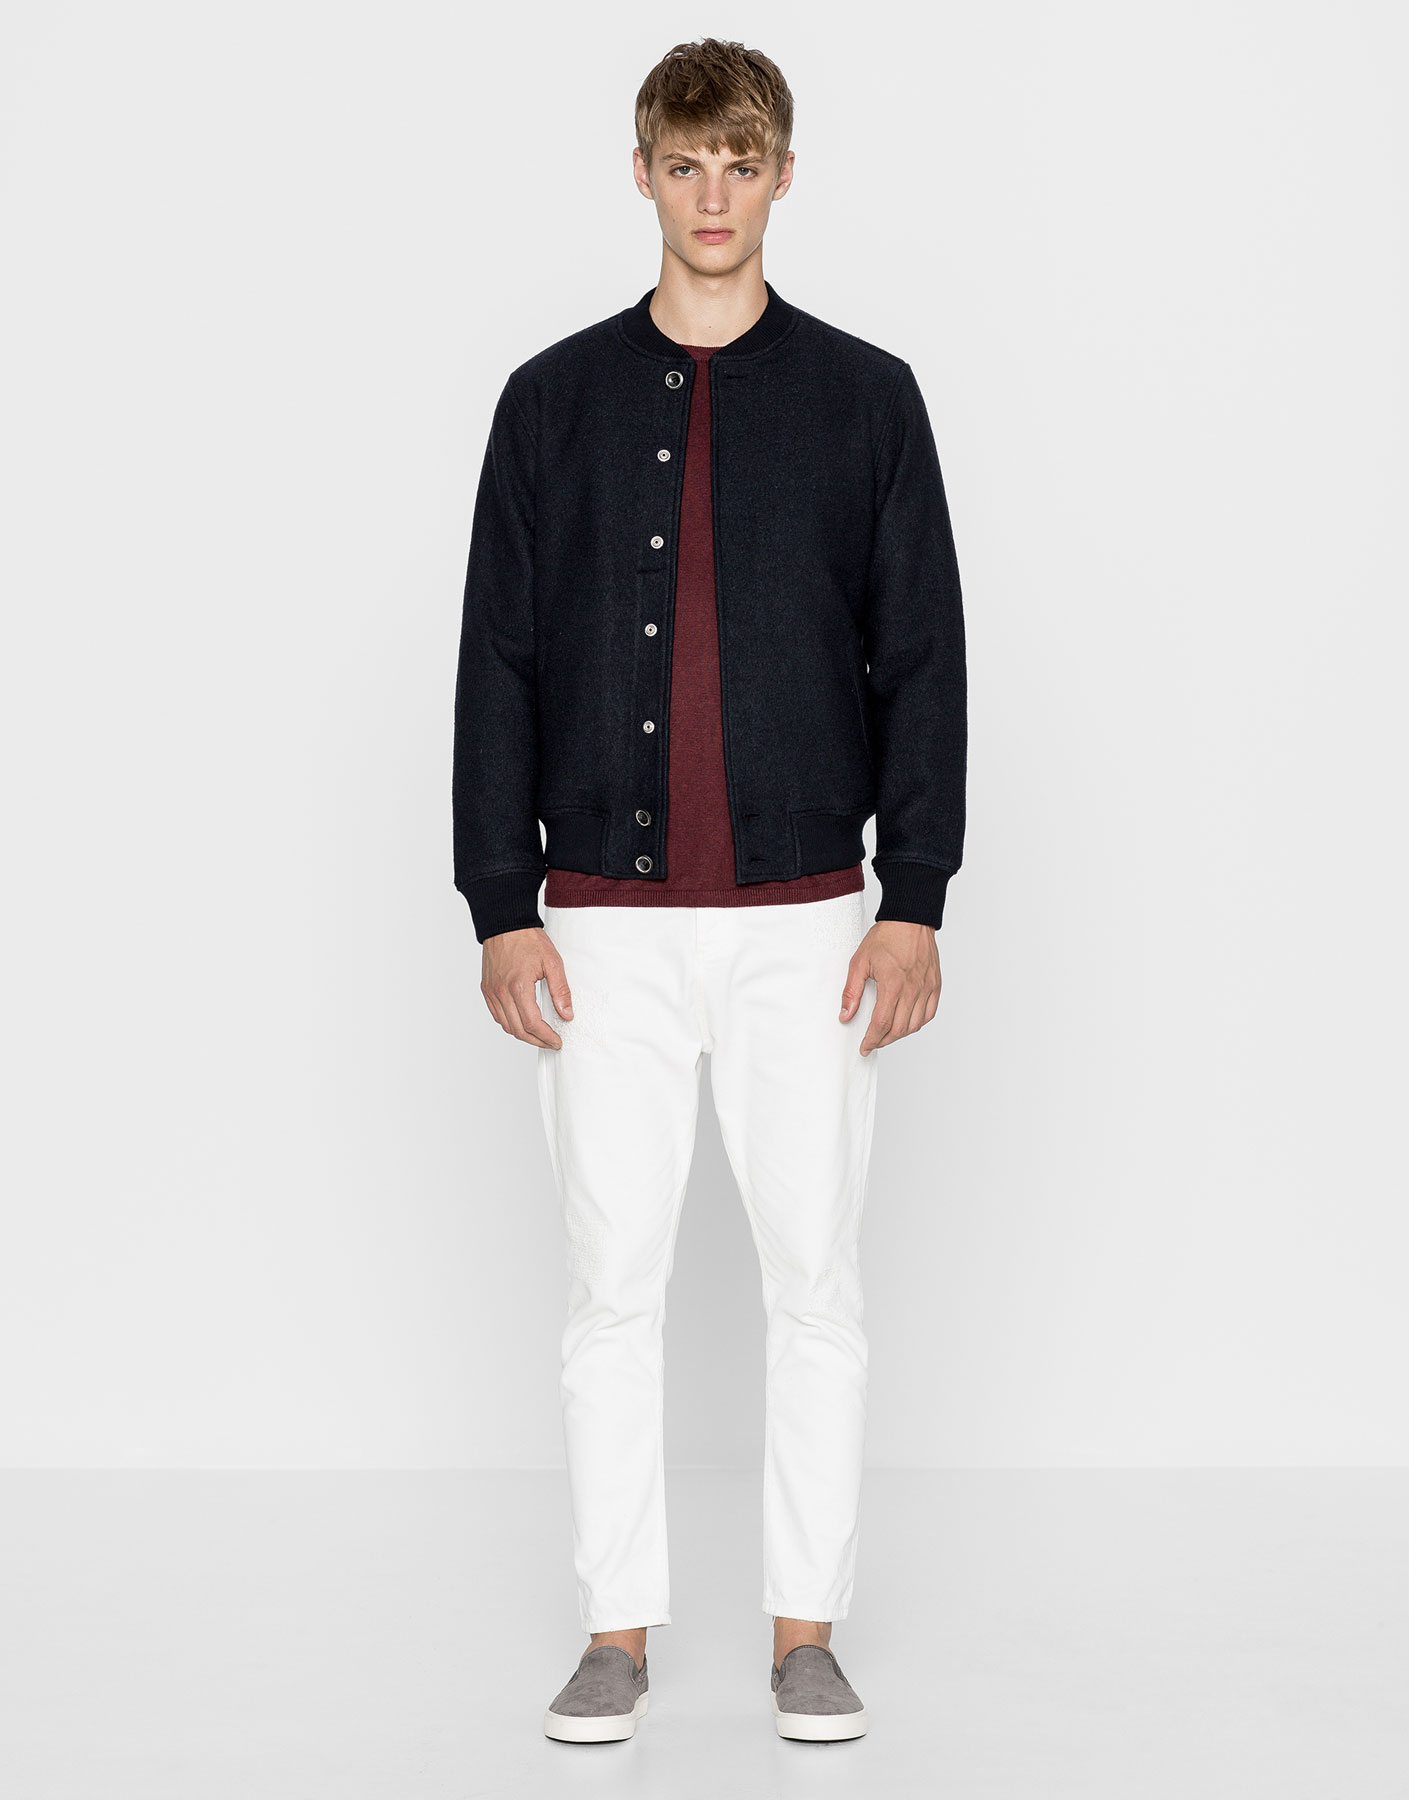 Cloth bomber jacket with snaps